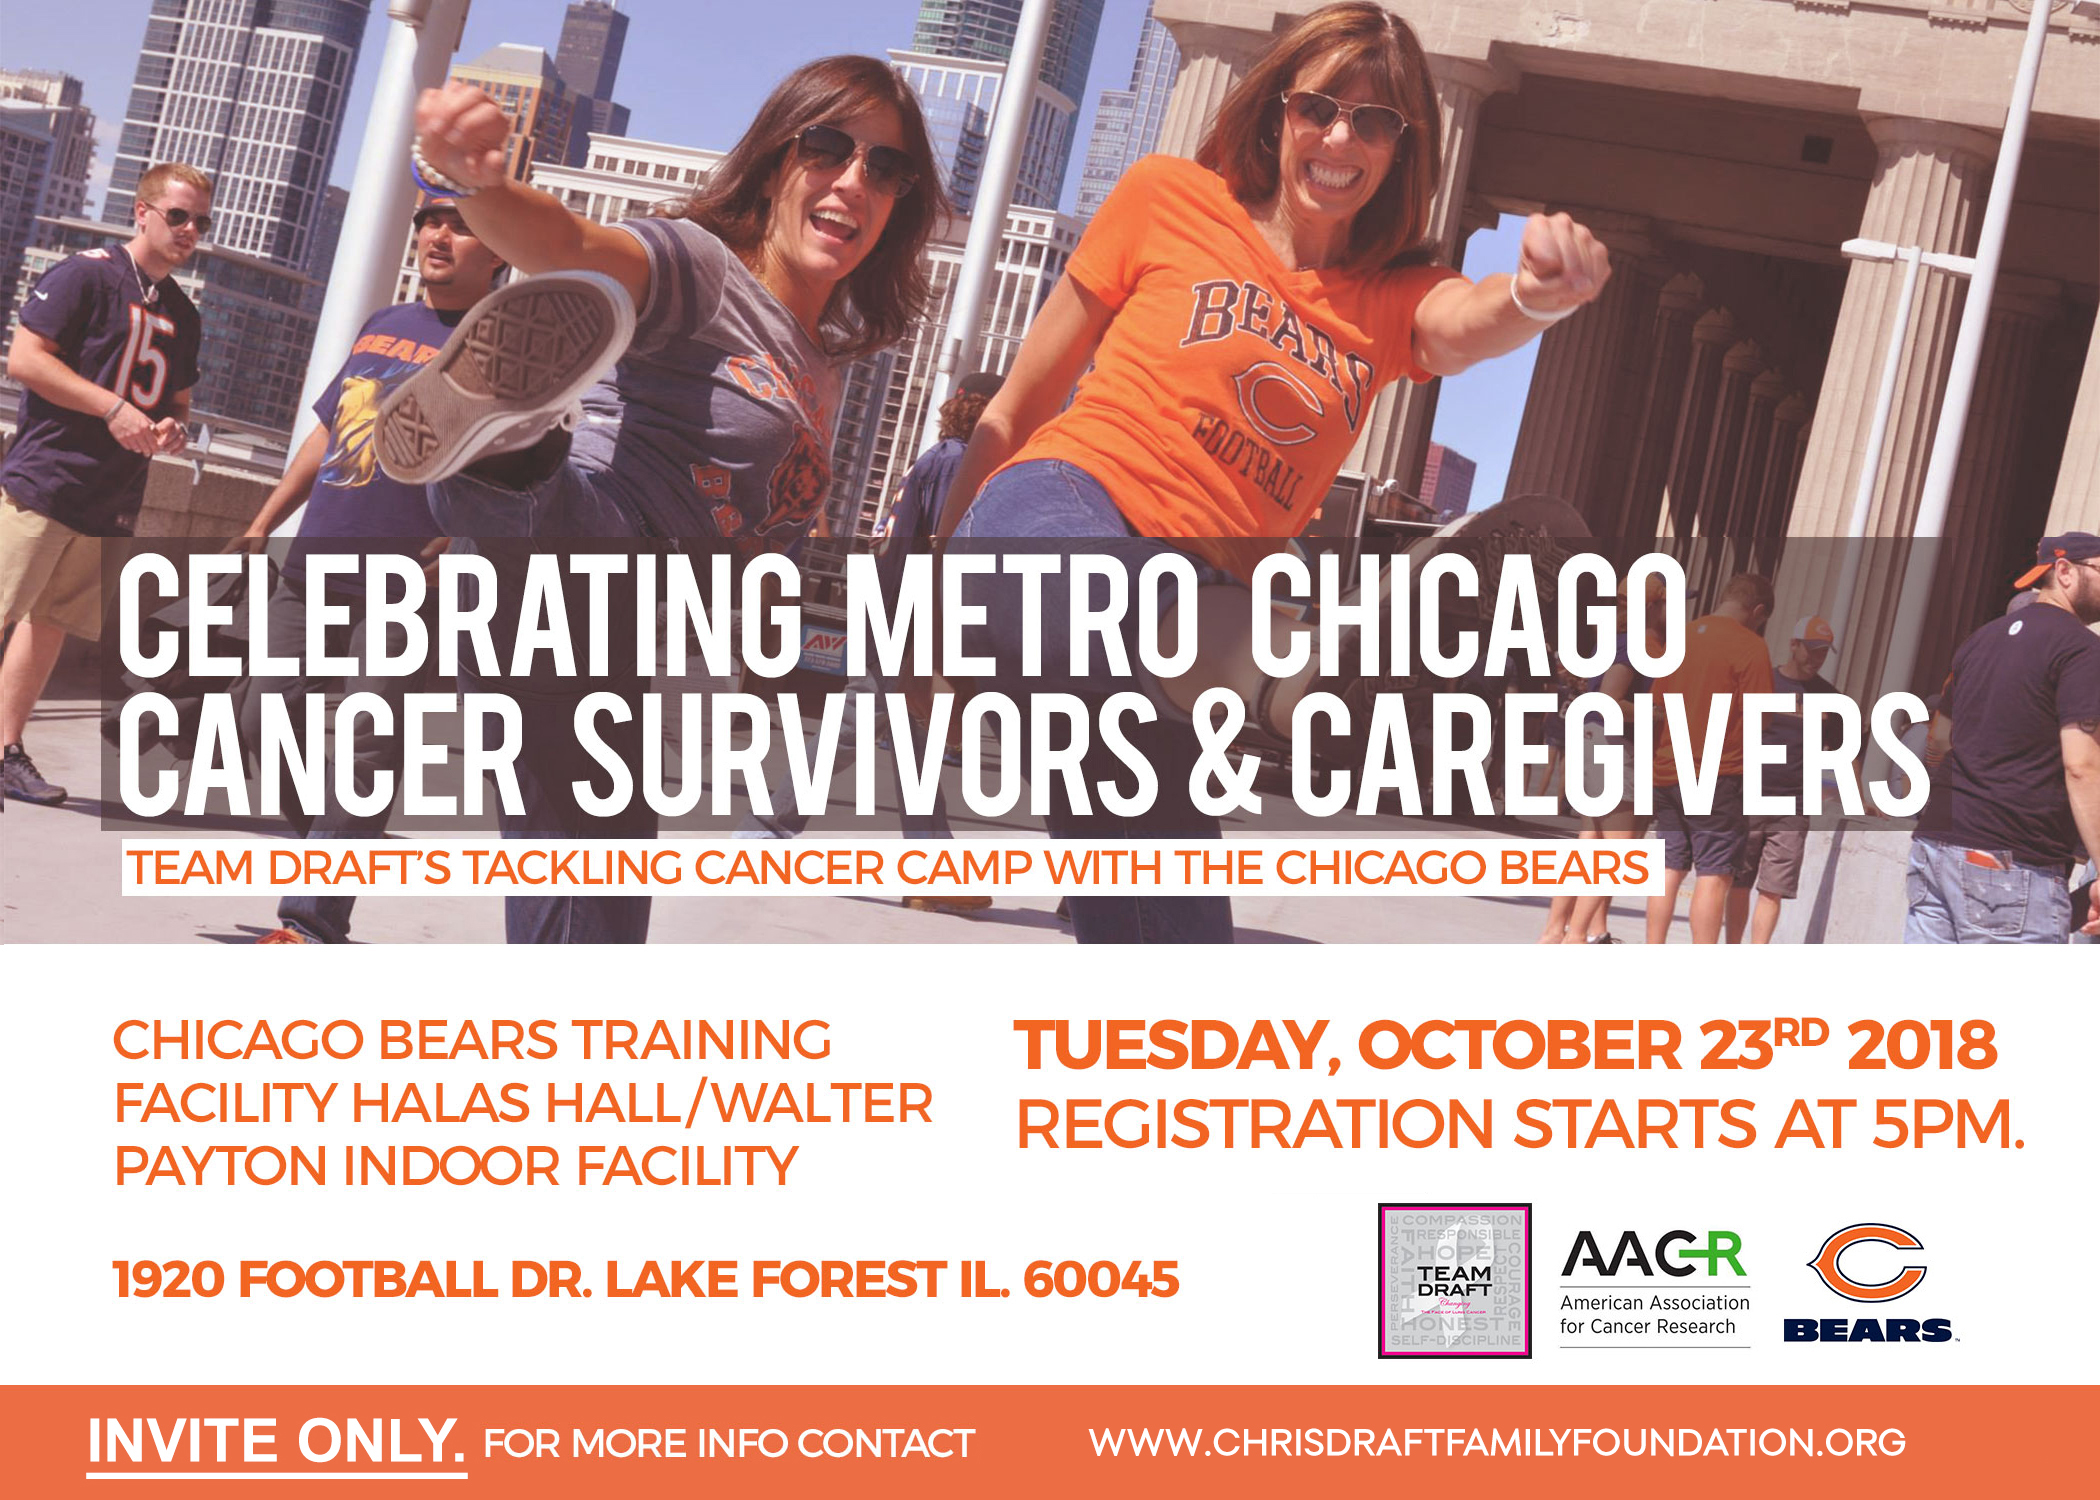 Tackling Cancer Camp with the Chicago Bears